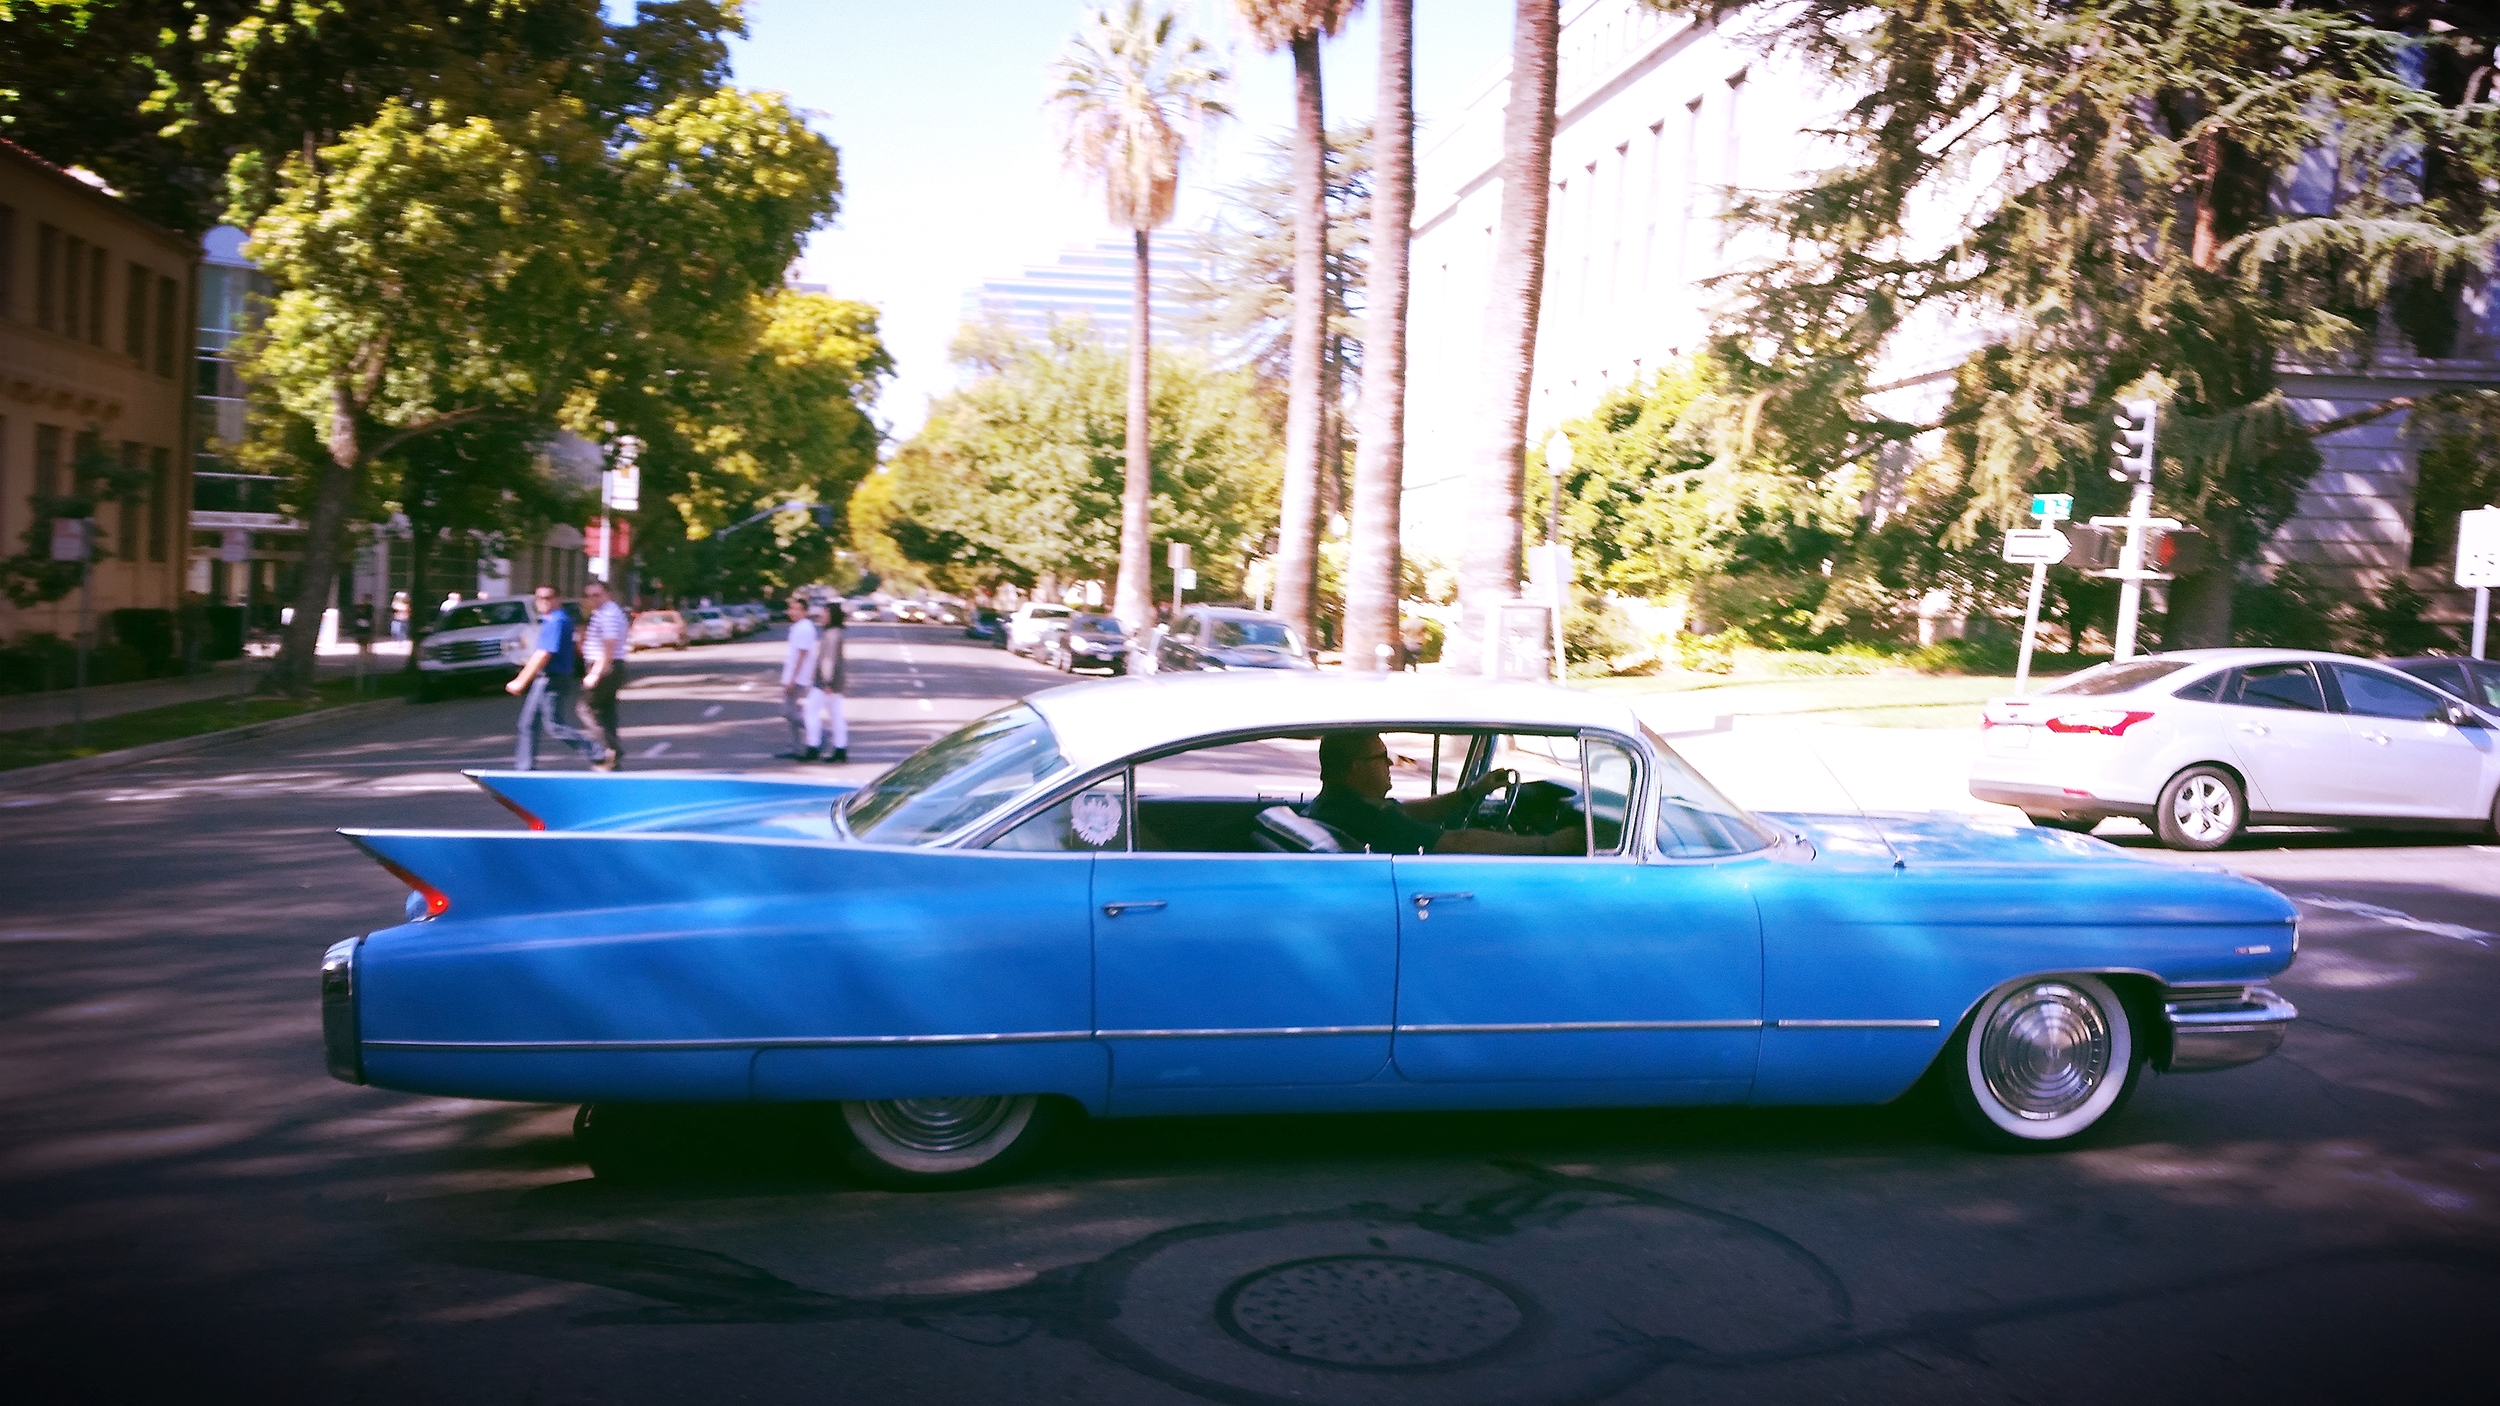 It took about a minute and a half to pass me.